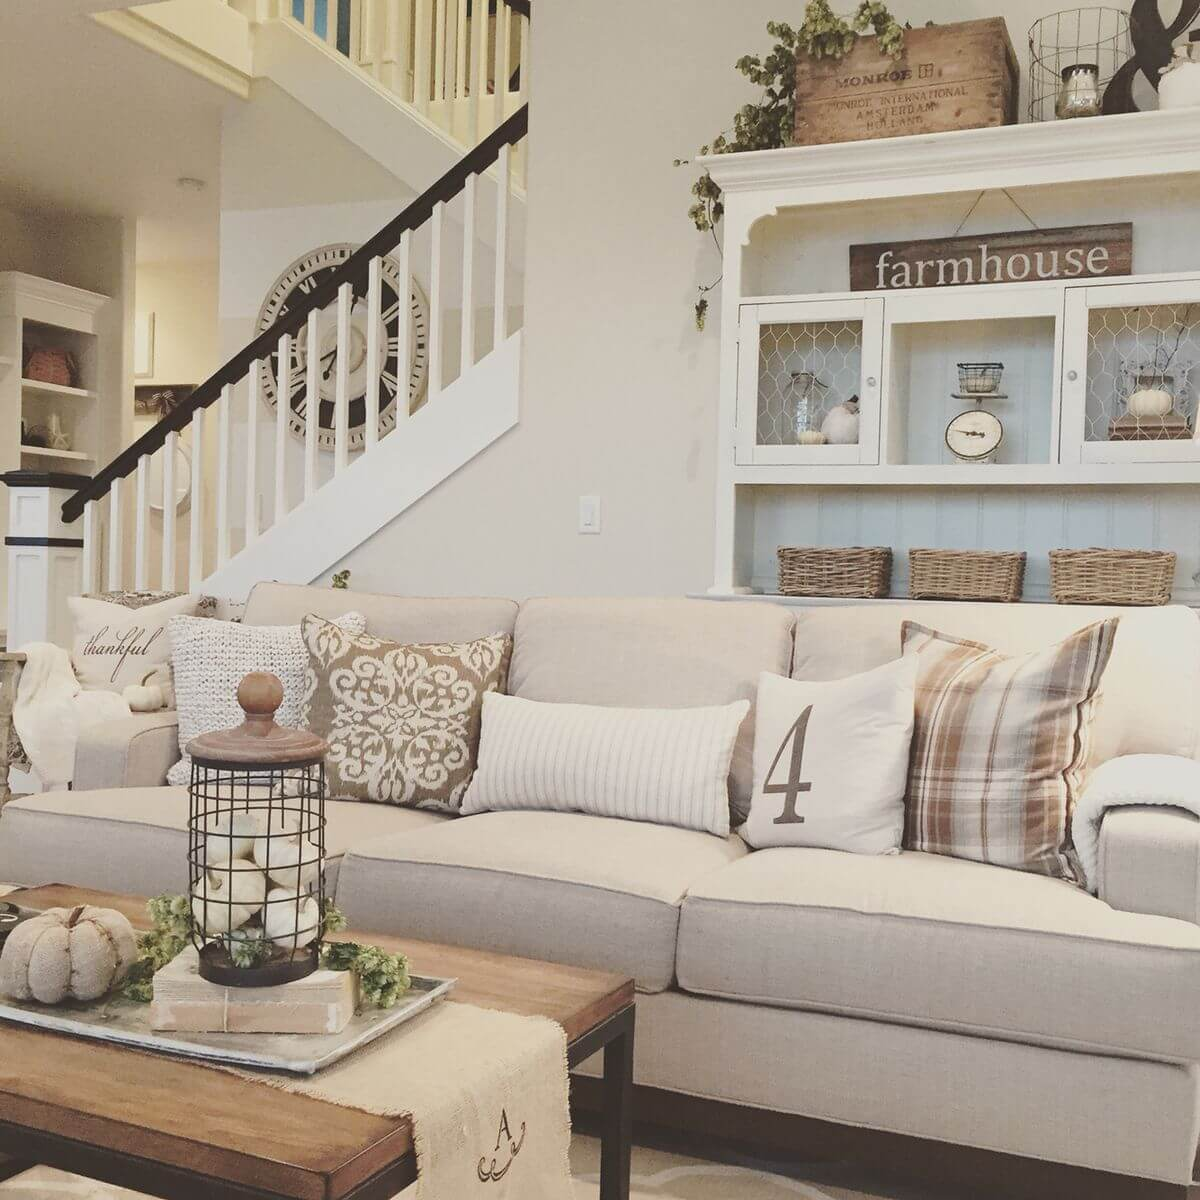 Country Farmhouse Living Room: 35 Best Farmhouse Living Room Decor Ideas And Designs For 2017